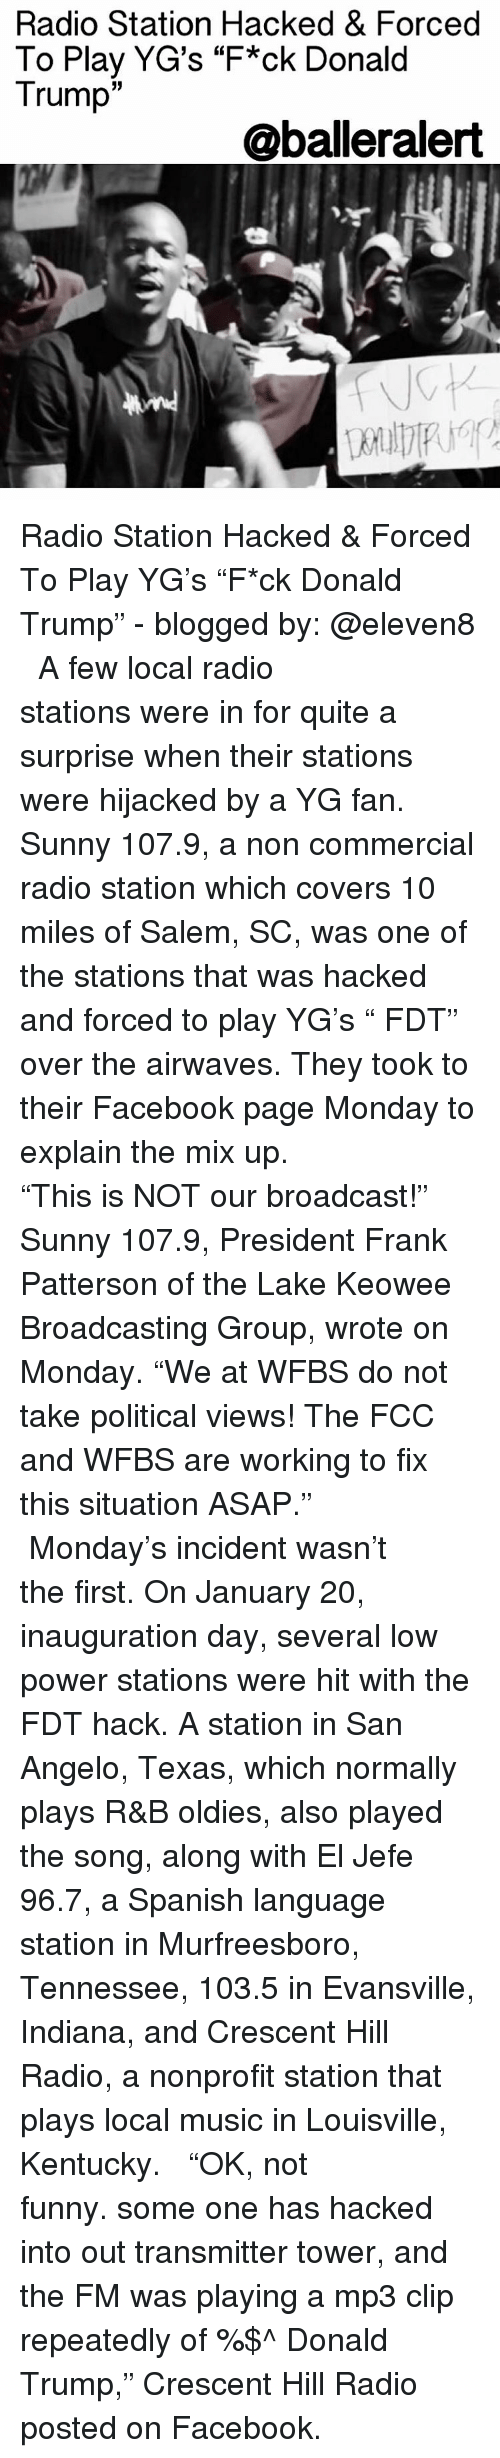 "Memes, Indiana, and Tennessee: Radio Station Hacked & Forced  To Play YG's ""F*ck Donald  Trump  33  @balleralert Radio Station Hacked & Forced To Play YG's ""F*ck Donald Trump"" - blogged by: @eleven8 ⠀⠀⠀⠀⠀⠀⠀⠀⠀ ⠀⠀⠀⠀⠀⠀⠀⠀⠀ A few local radio stations were in for quite a surprise when their stations were hijacked by a YG fan. Sunny 107.9, a non commercial radio station which covers 10 miles of Salem, SC, was one of the stations that was hacked and forced to play YG's "" FDT"" over the airwaves. They took to their Facebook page Monday to explain the mix up. ⠀⠀⠀⠀⠀⠀⠀⠀⠀ ⠀⠀⠀⠀⠀⠀⠀⠀⠀ ""This is NOT our broadcast!"" Sunny 107.9, President Frank Patterson of the Lake Keowee Broadcasting Group, wrote on Monday. ""We at WFBS do not take political views! The FCC and WFBS are working to fix this situation ASAP."" ⠀⠀⠀⠀⠀⠀⠀⠀⠀ ⠀⠀⠀⠀⠀⠀⠀⠀⠀ Monday's incident wasn't the first. On January 20, inauguration day, several low power stations were hit with the FDT hack. A station in San Angelo, Texas, which normally plays R&B oldies, also played the song, along with El Jefe 96.7, a Spanish language station in Murfreesboro, Tennessee, 103.5 in Evansville, Indiana, and Crescent Hill Radio, a nonprofit station that plays local music in Louisville, Kentucky. ⠀⠀⠀⠀⠀⠀⠀⠀⠀ ⠀⠀⠀⠀⠀⠀⠀⠀⠀ ""OK, not funny. some one has hacked into out transmitter tower, and the FM was playing a mp3 clip repeatedly of %$^ Donald Trump,"" Crescent Hill Radio posted on Facebook."